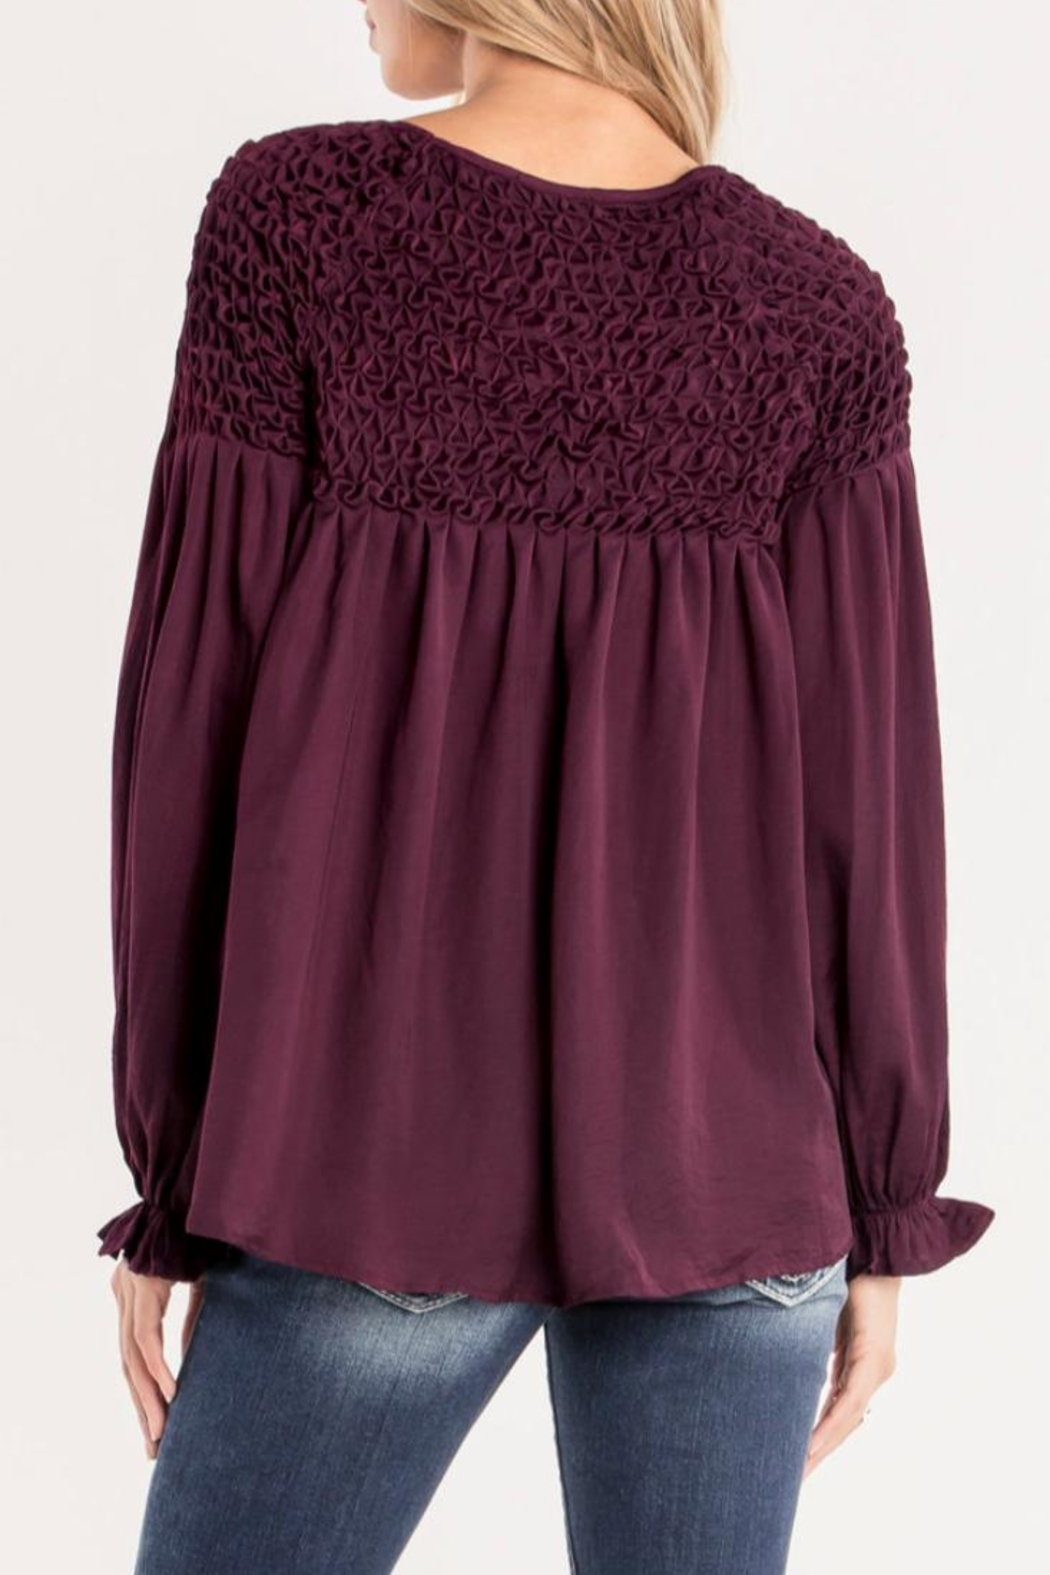 Miss Me Plum Ruffle Top - Front Full Image